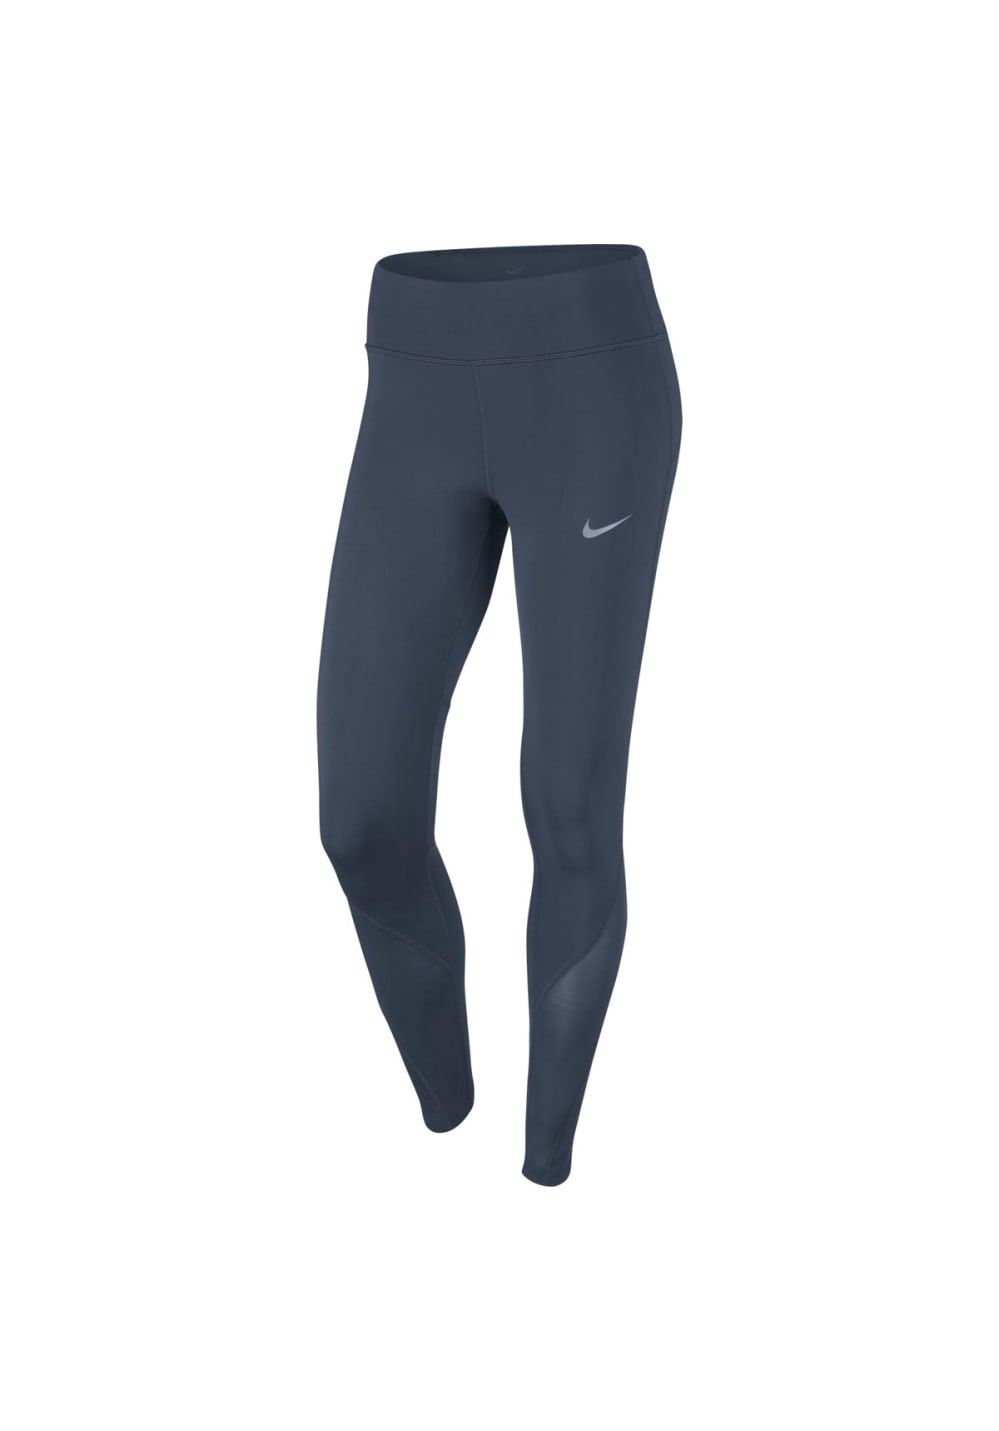 Nike Power Epic Lux Running Tights Pantalons course pour Femme Gris